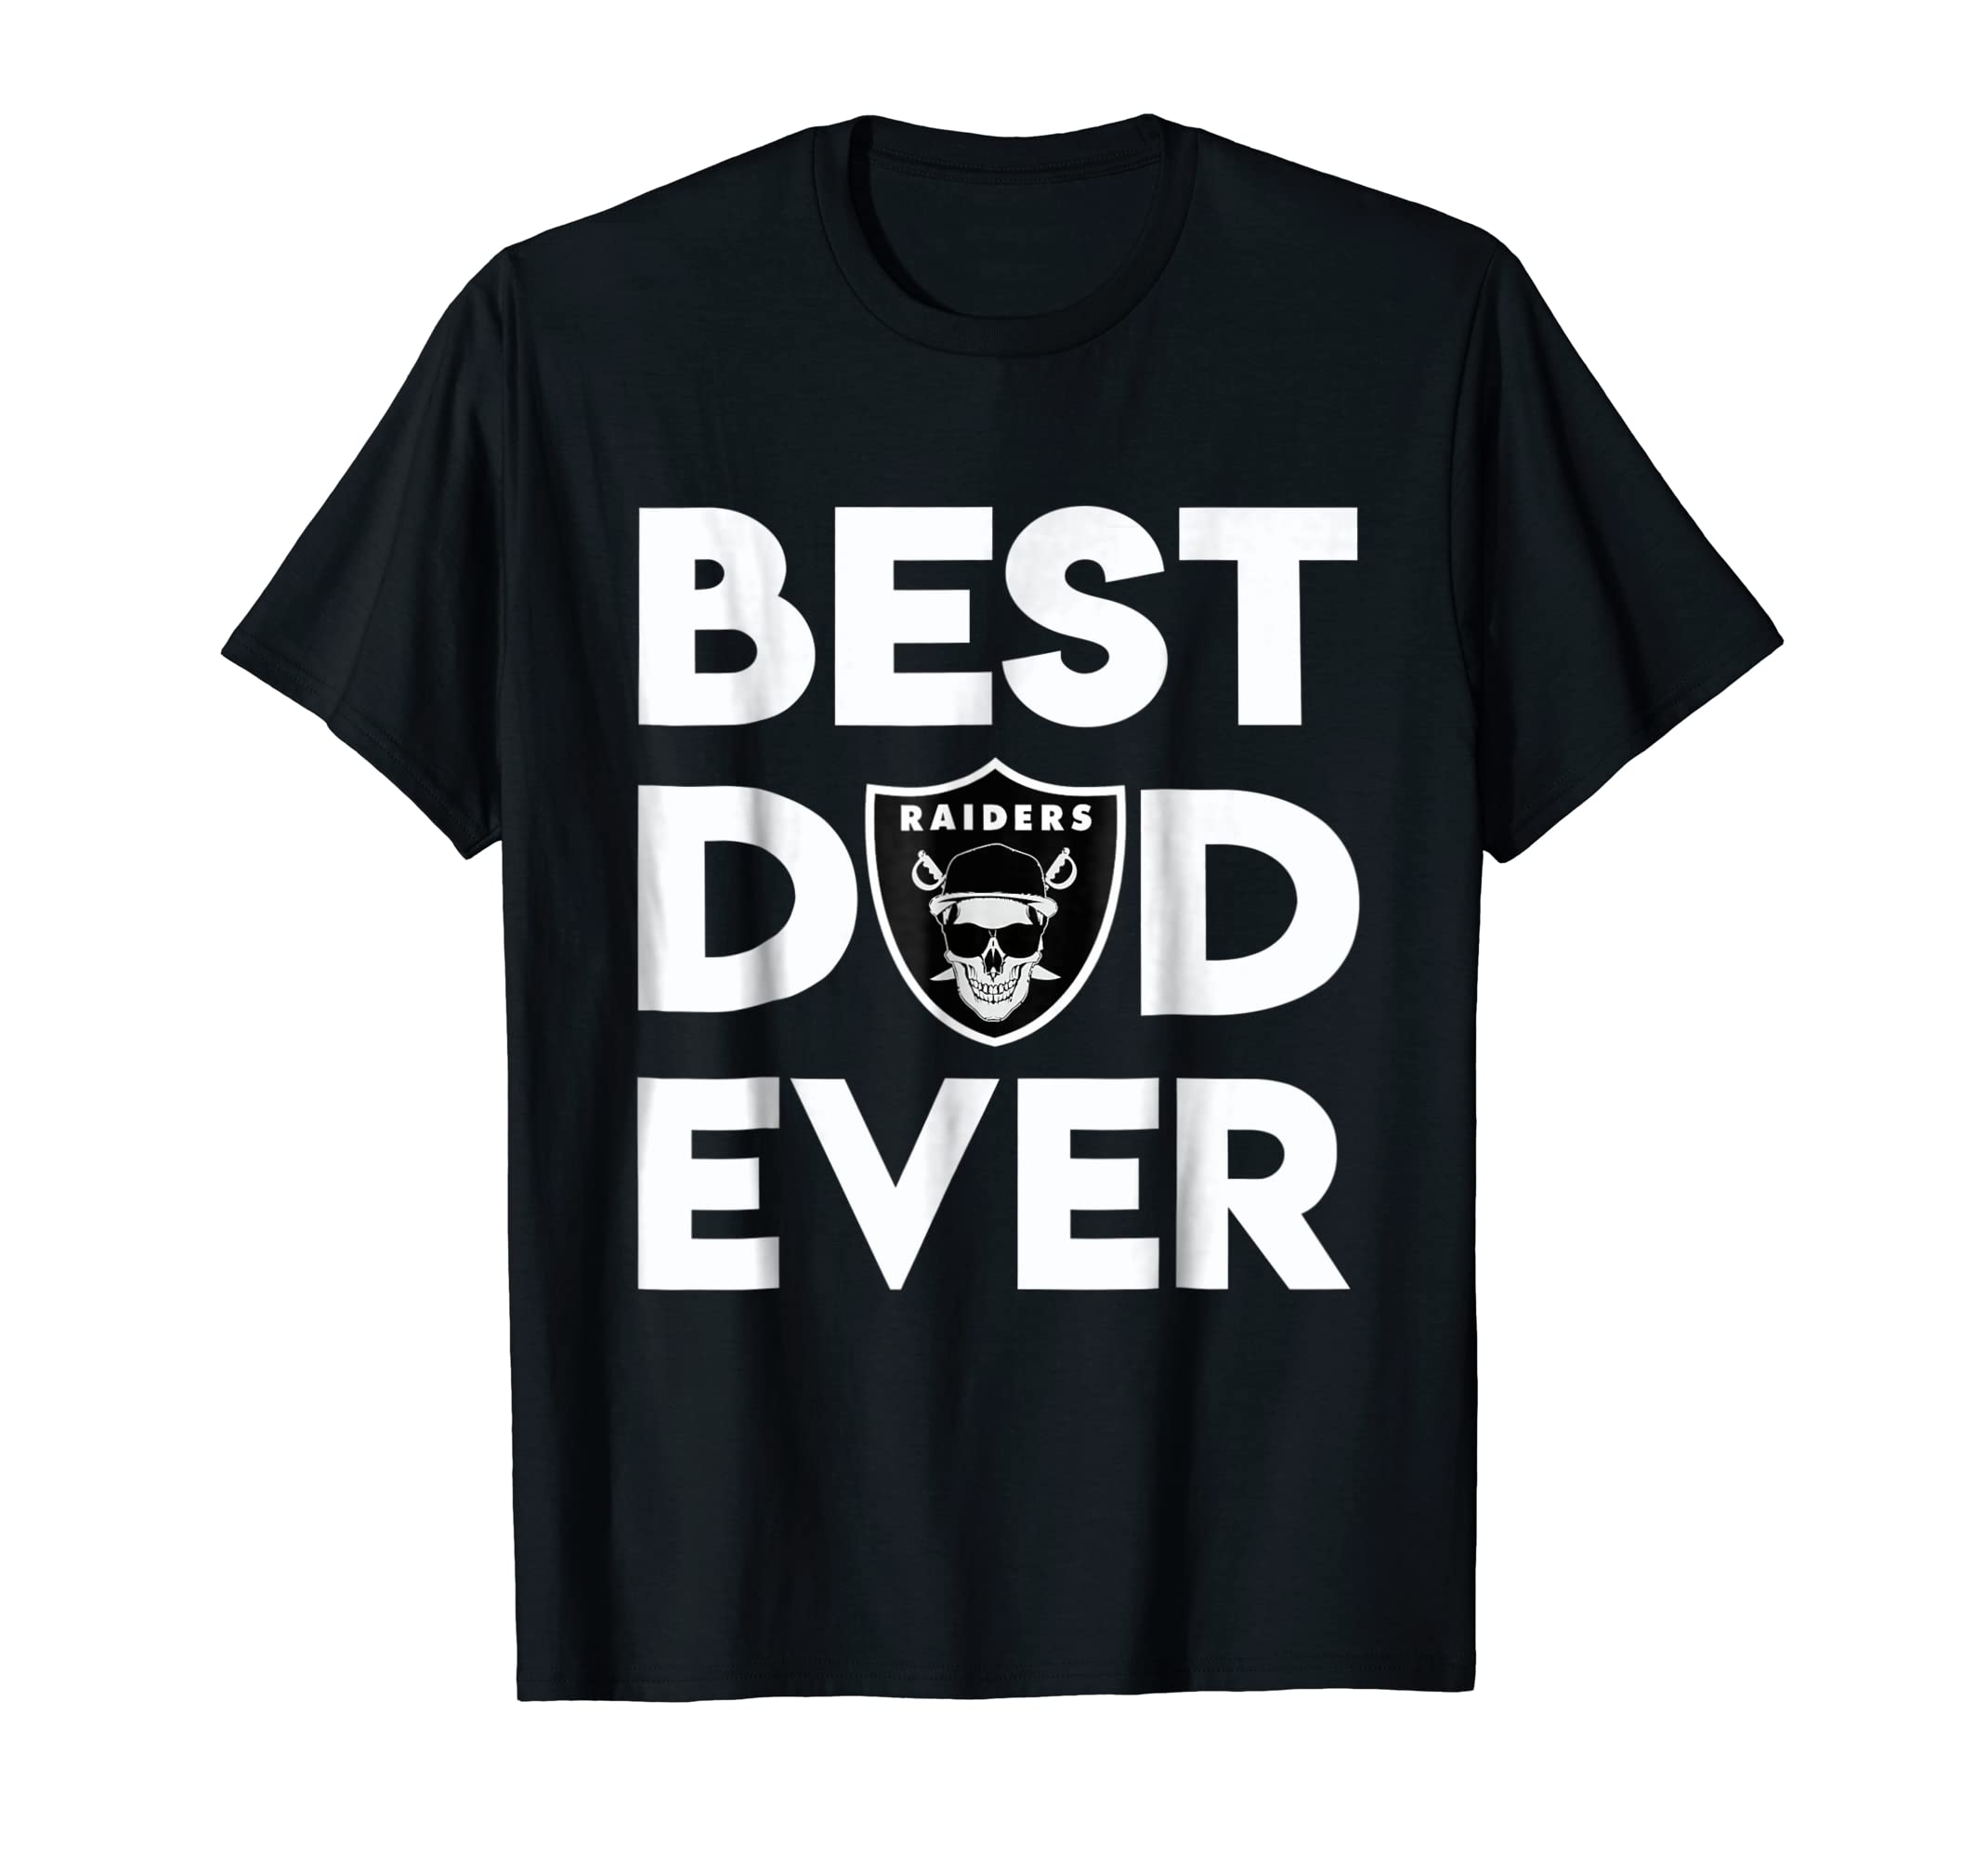 ff69b645 Mens Best Raiders Dad Ever T-Shirt Father's Day Gift – Paramatee